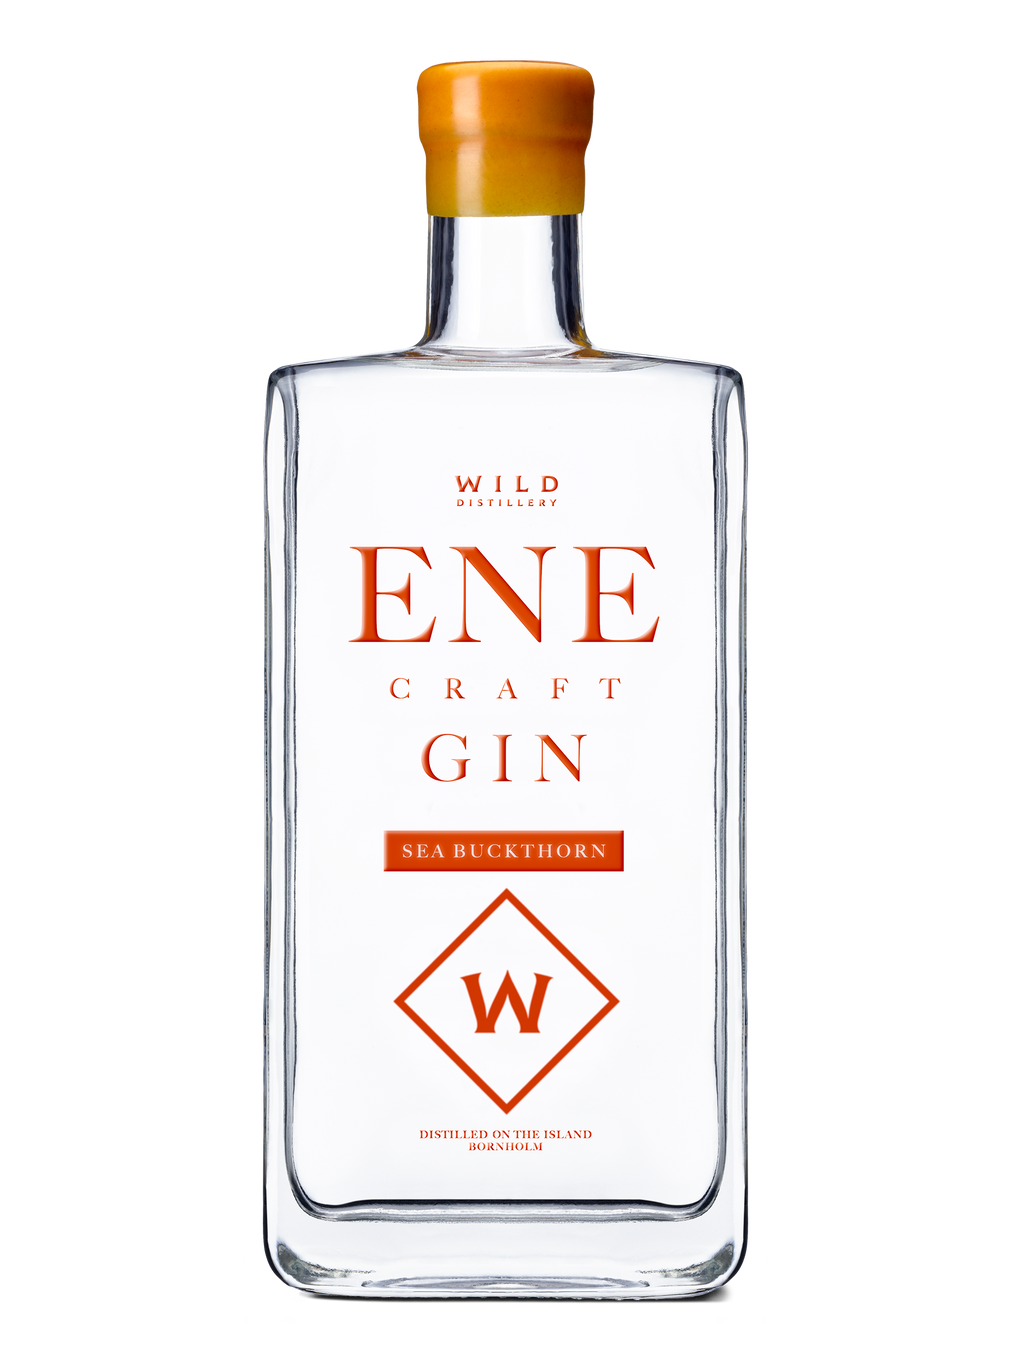 Ene Craft Gin - Sea buckthorn - Havtorn